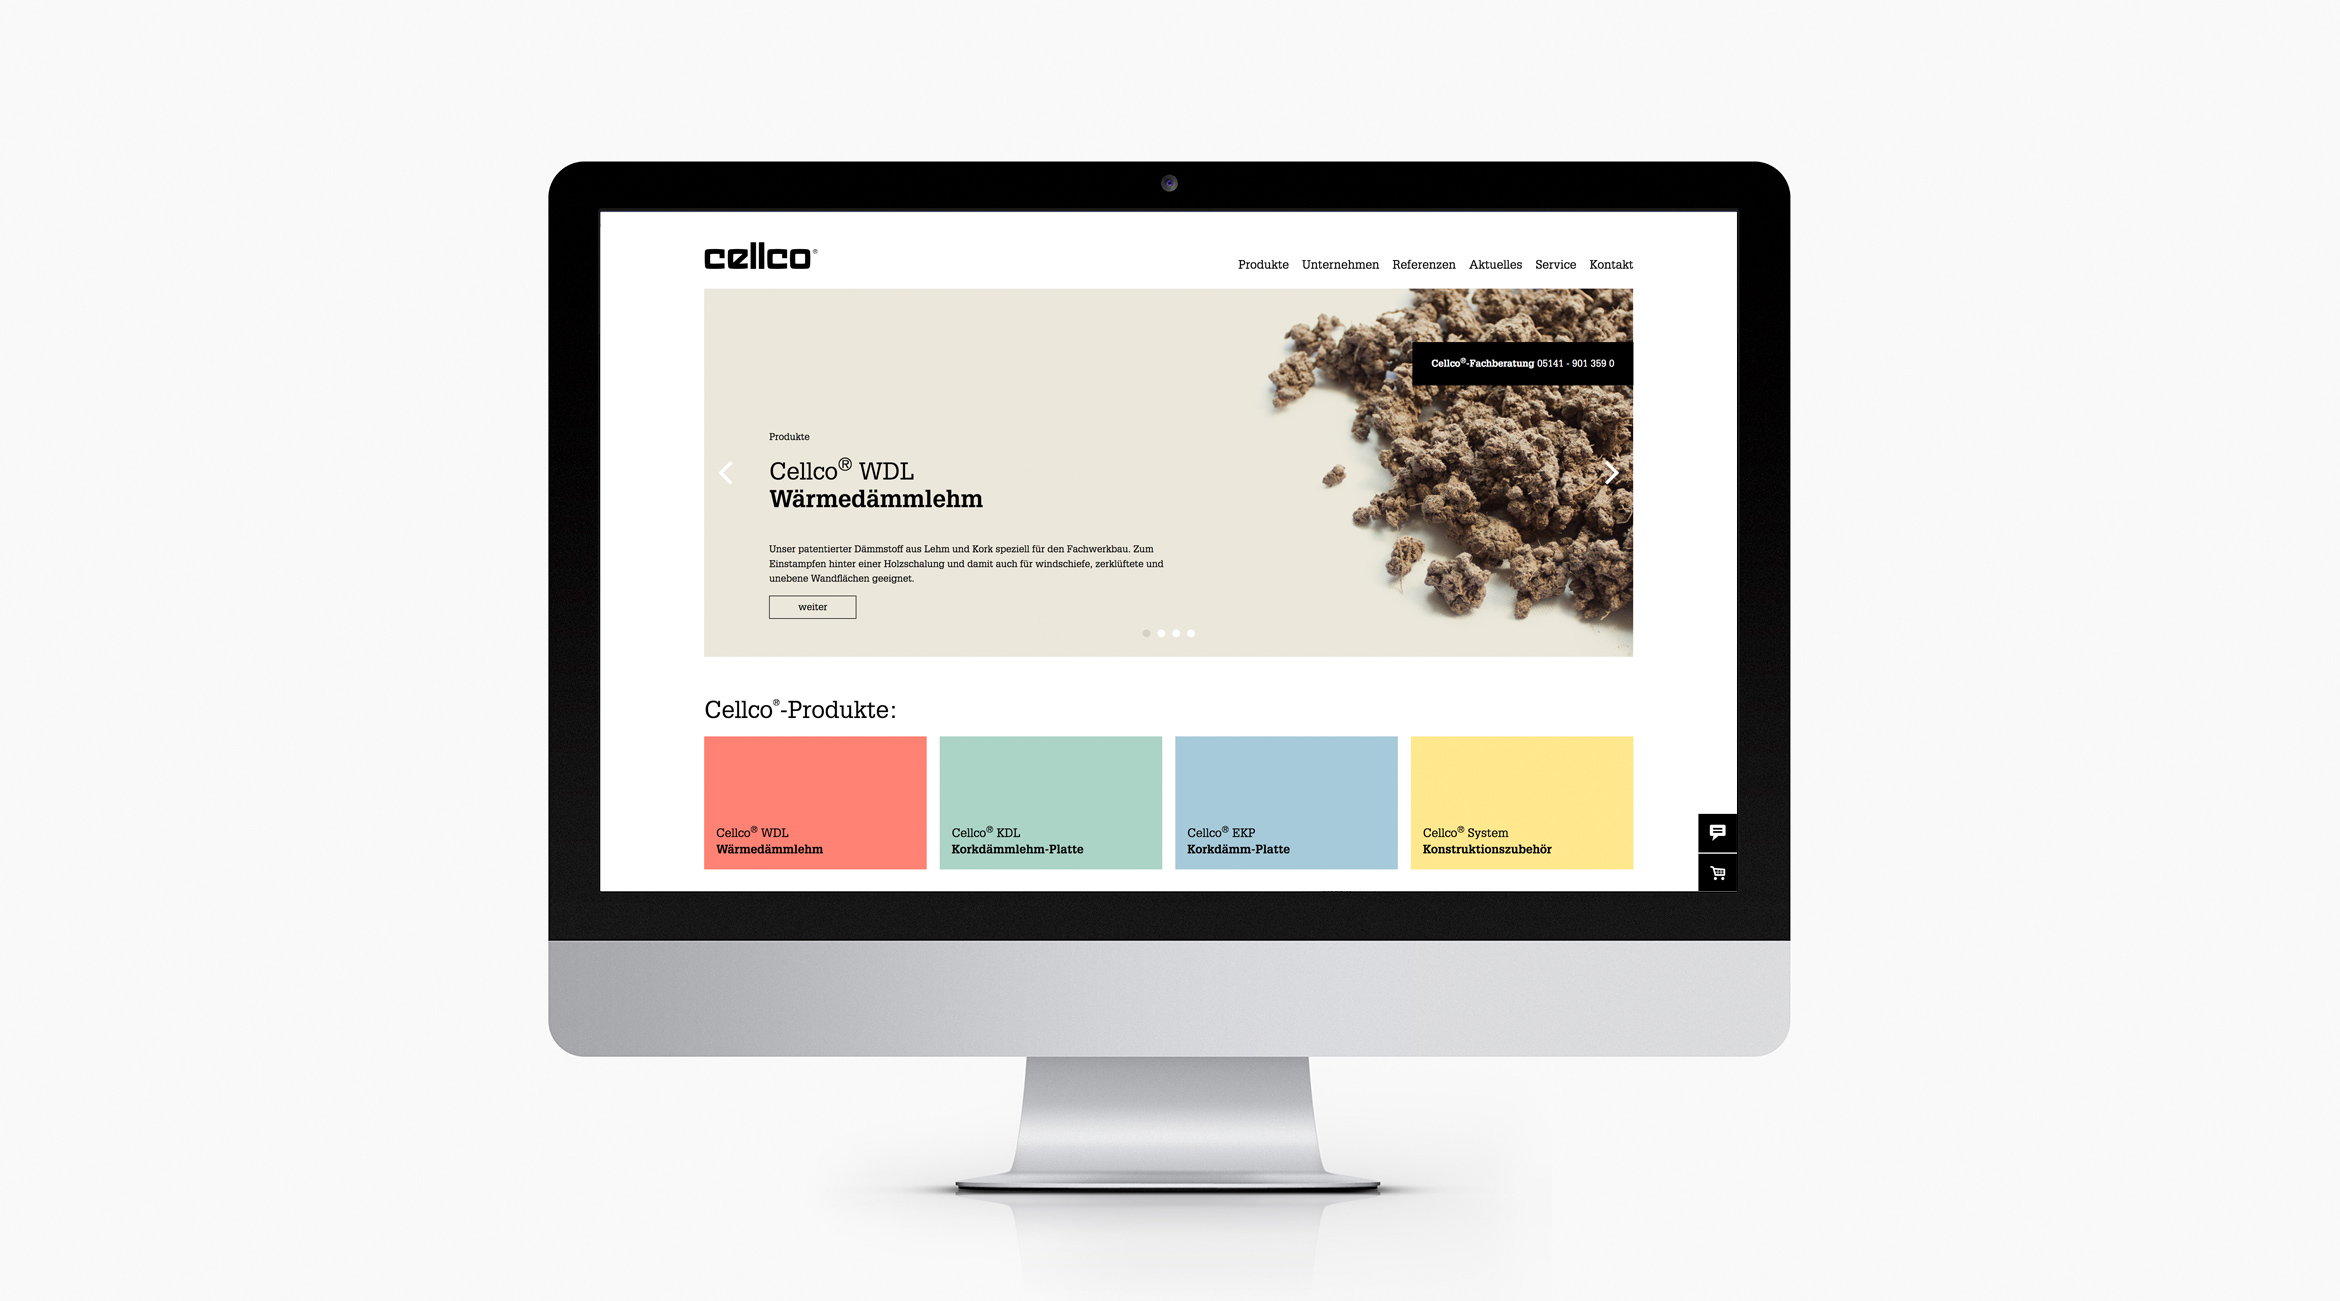 cellco-corporate-design-buero-ink-webdesign